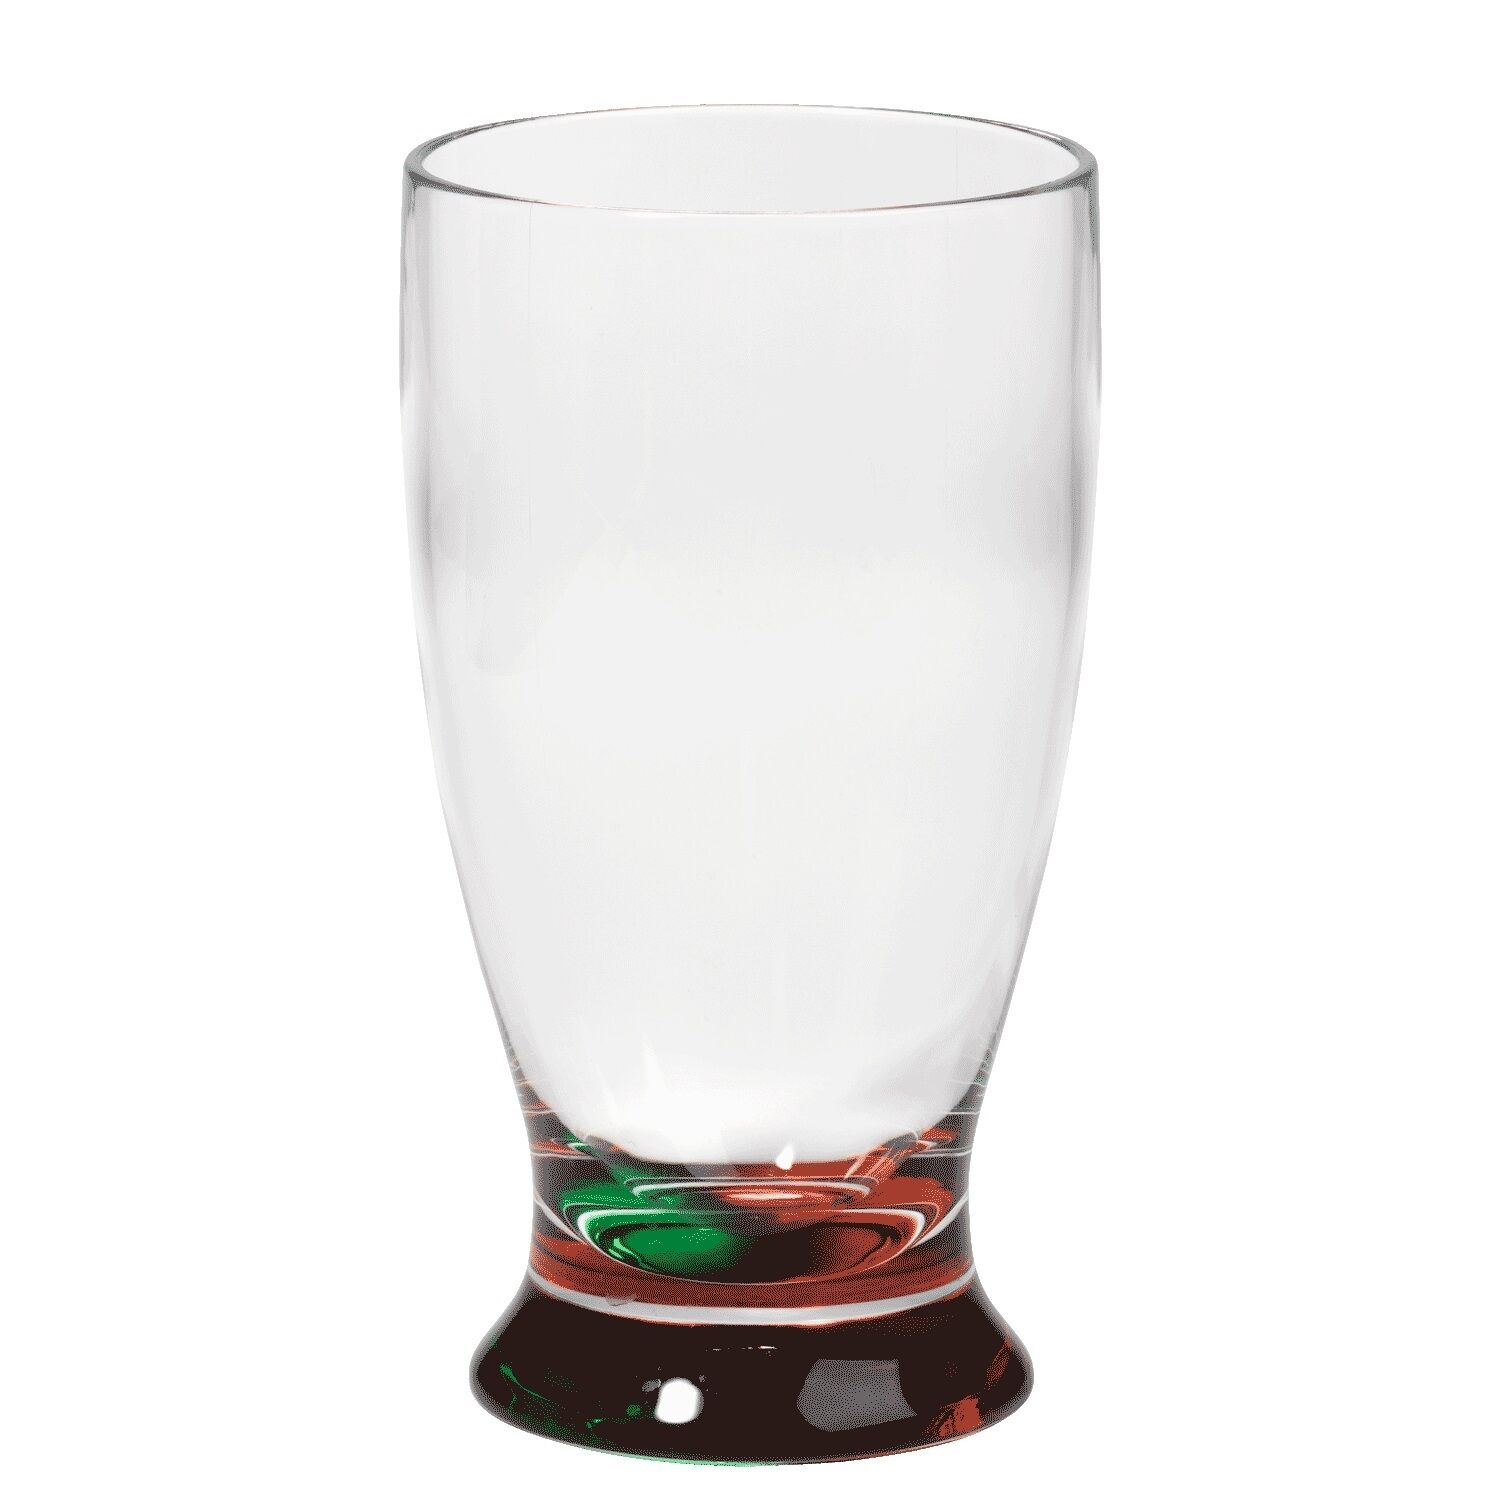 Merritt 19oz Holiday Impressions Red Green High Ball Tumblers  Glasses Set of 6